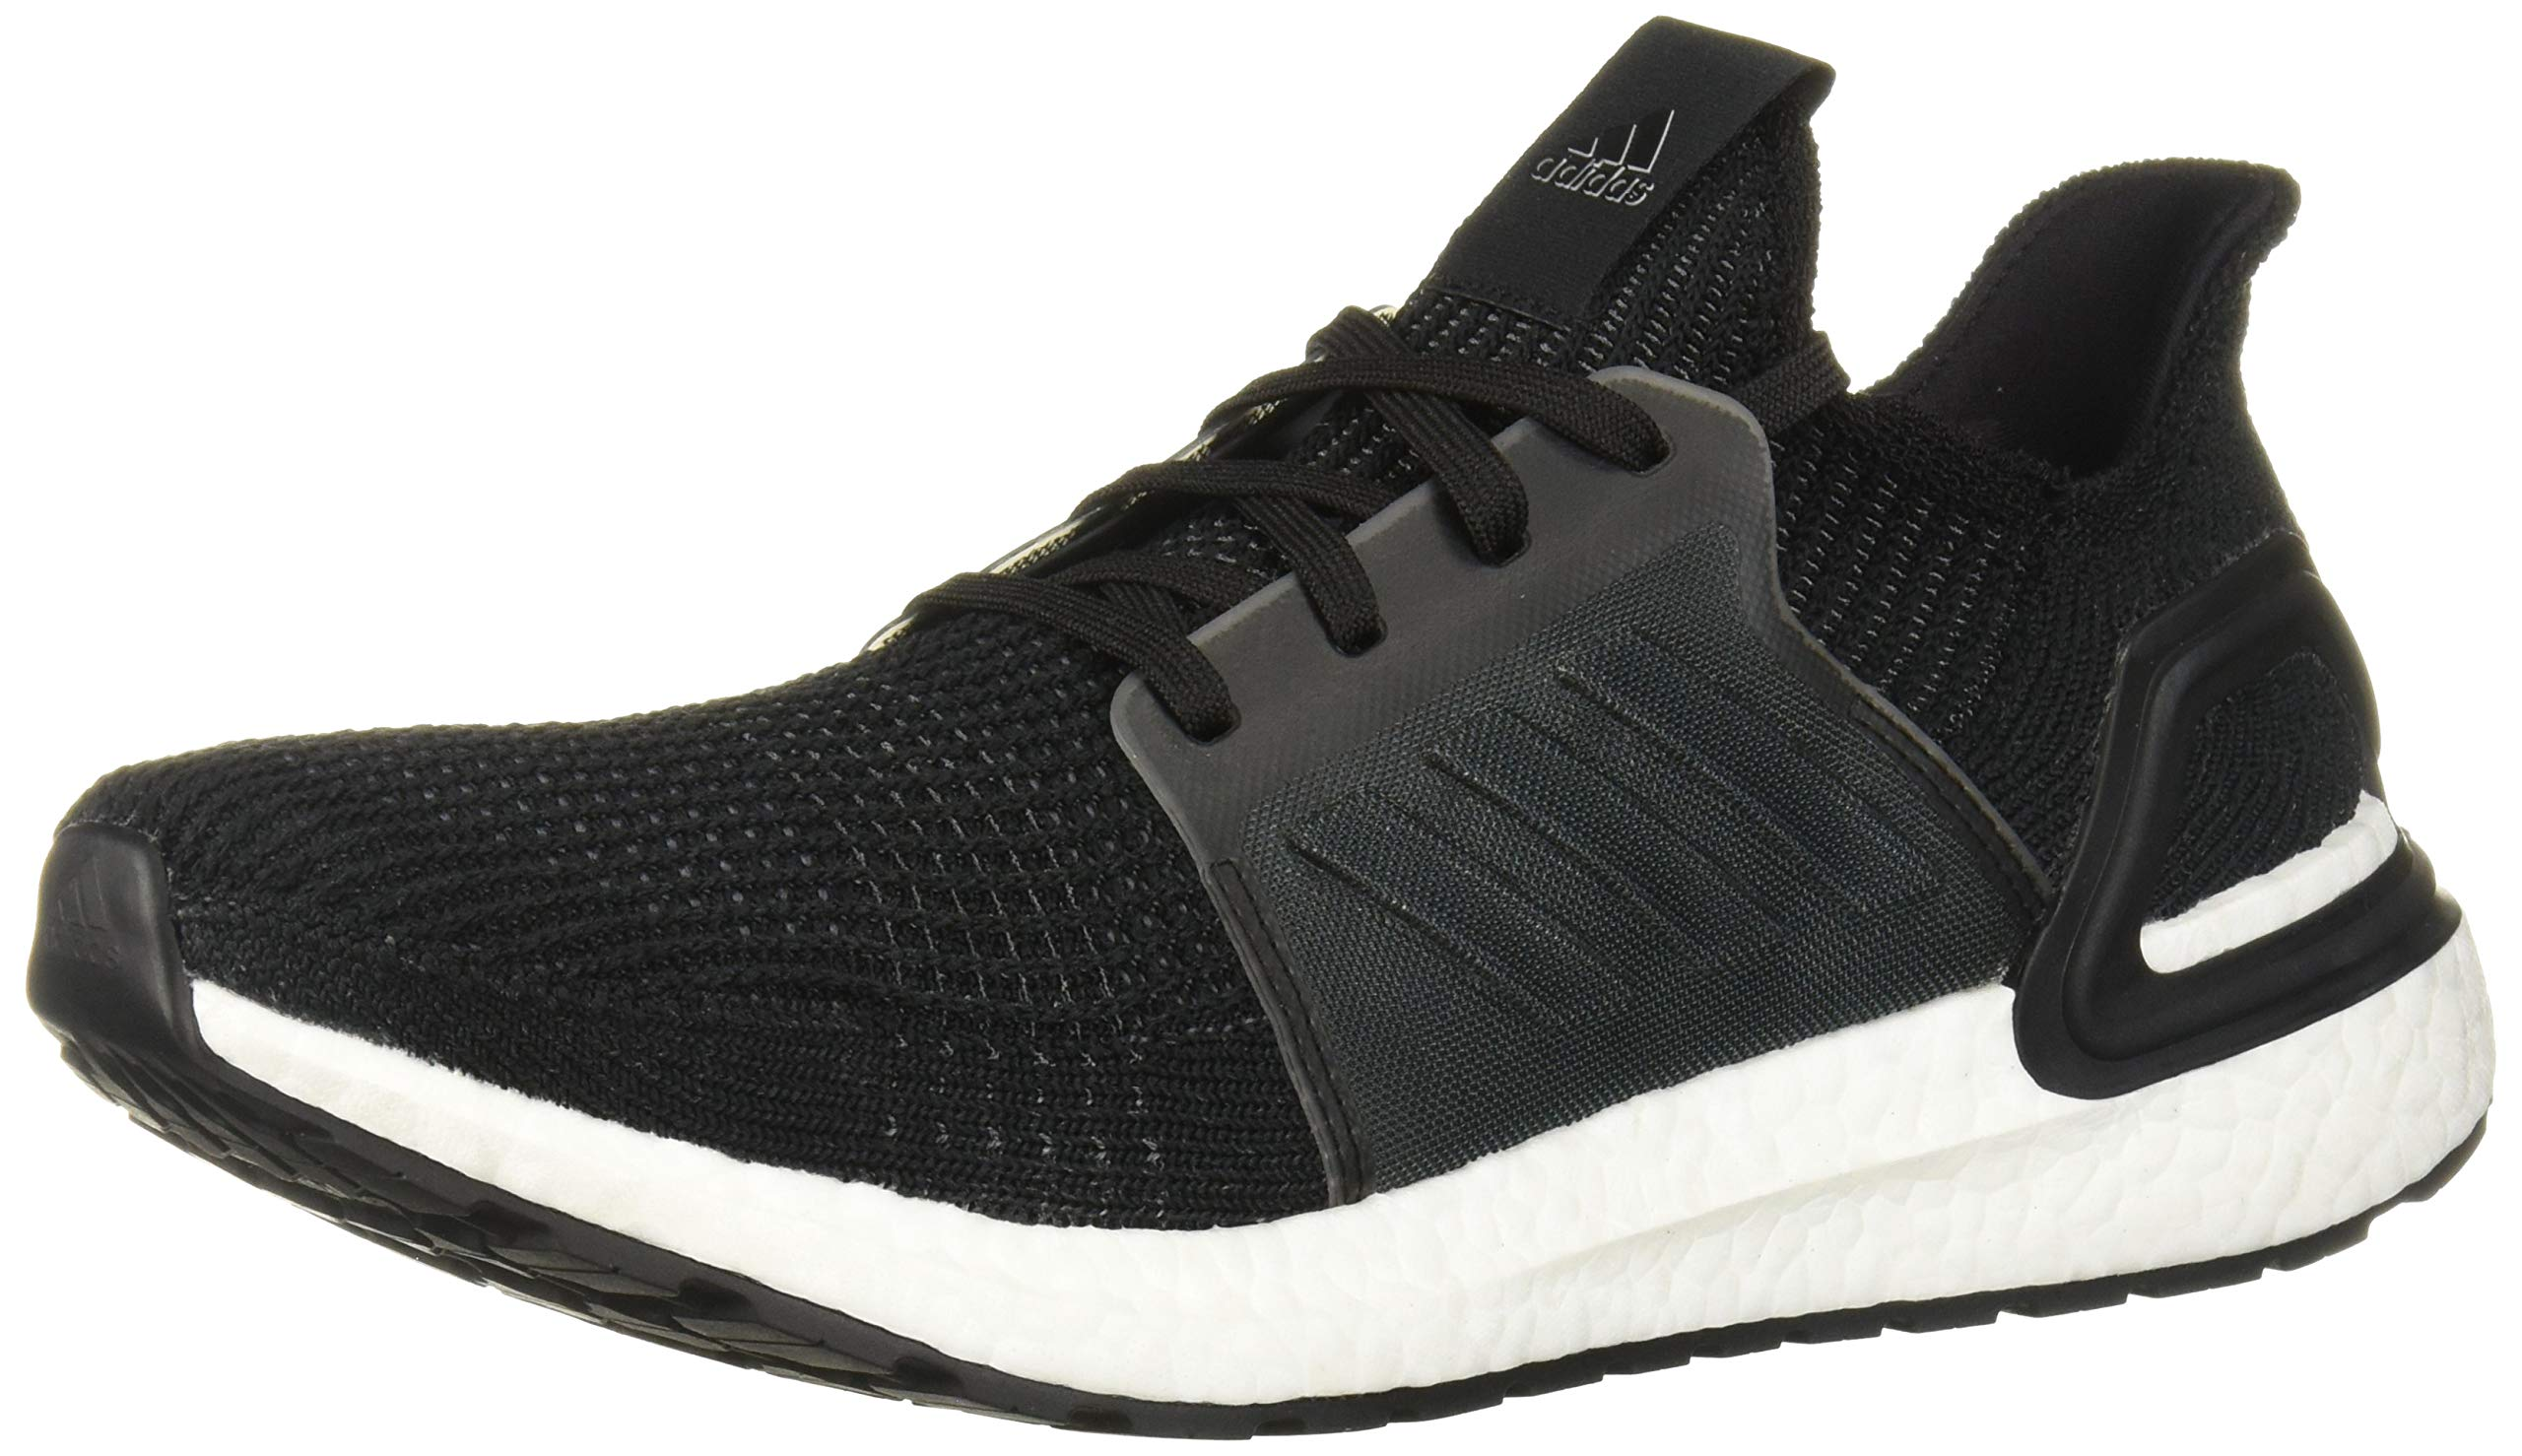 adidas Men's Ultraboost 19 Running Shoe, Black/White, 10 M US by adidas